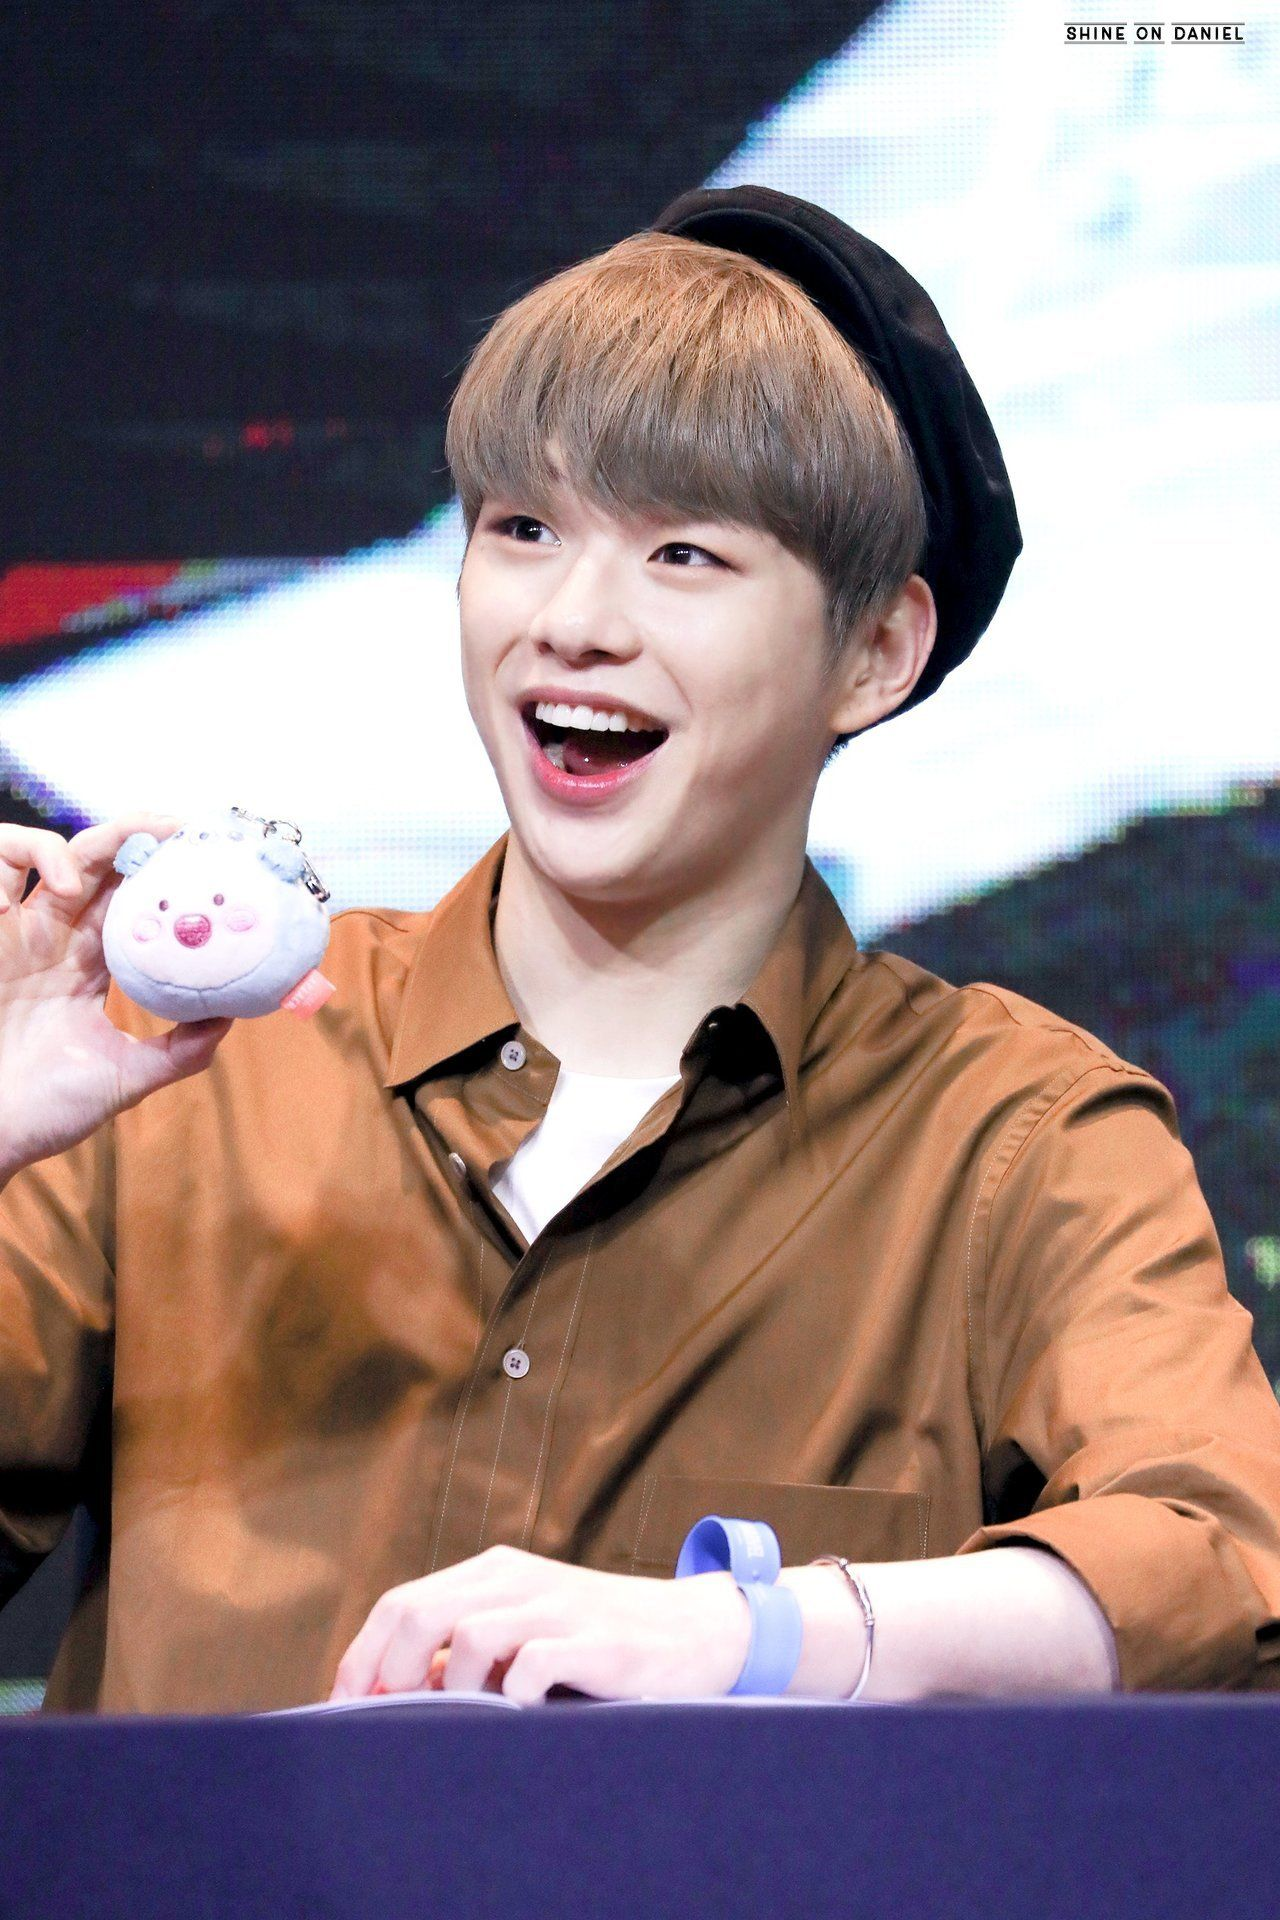 """190803 yeouido fansign SHINE ON DANIEL ϟ do not edit. "" #kangdaniel"